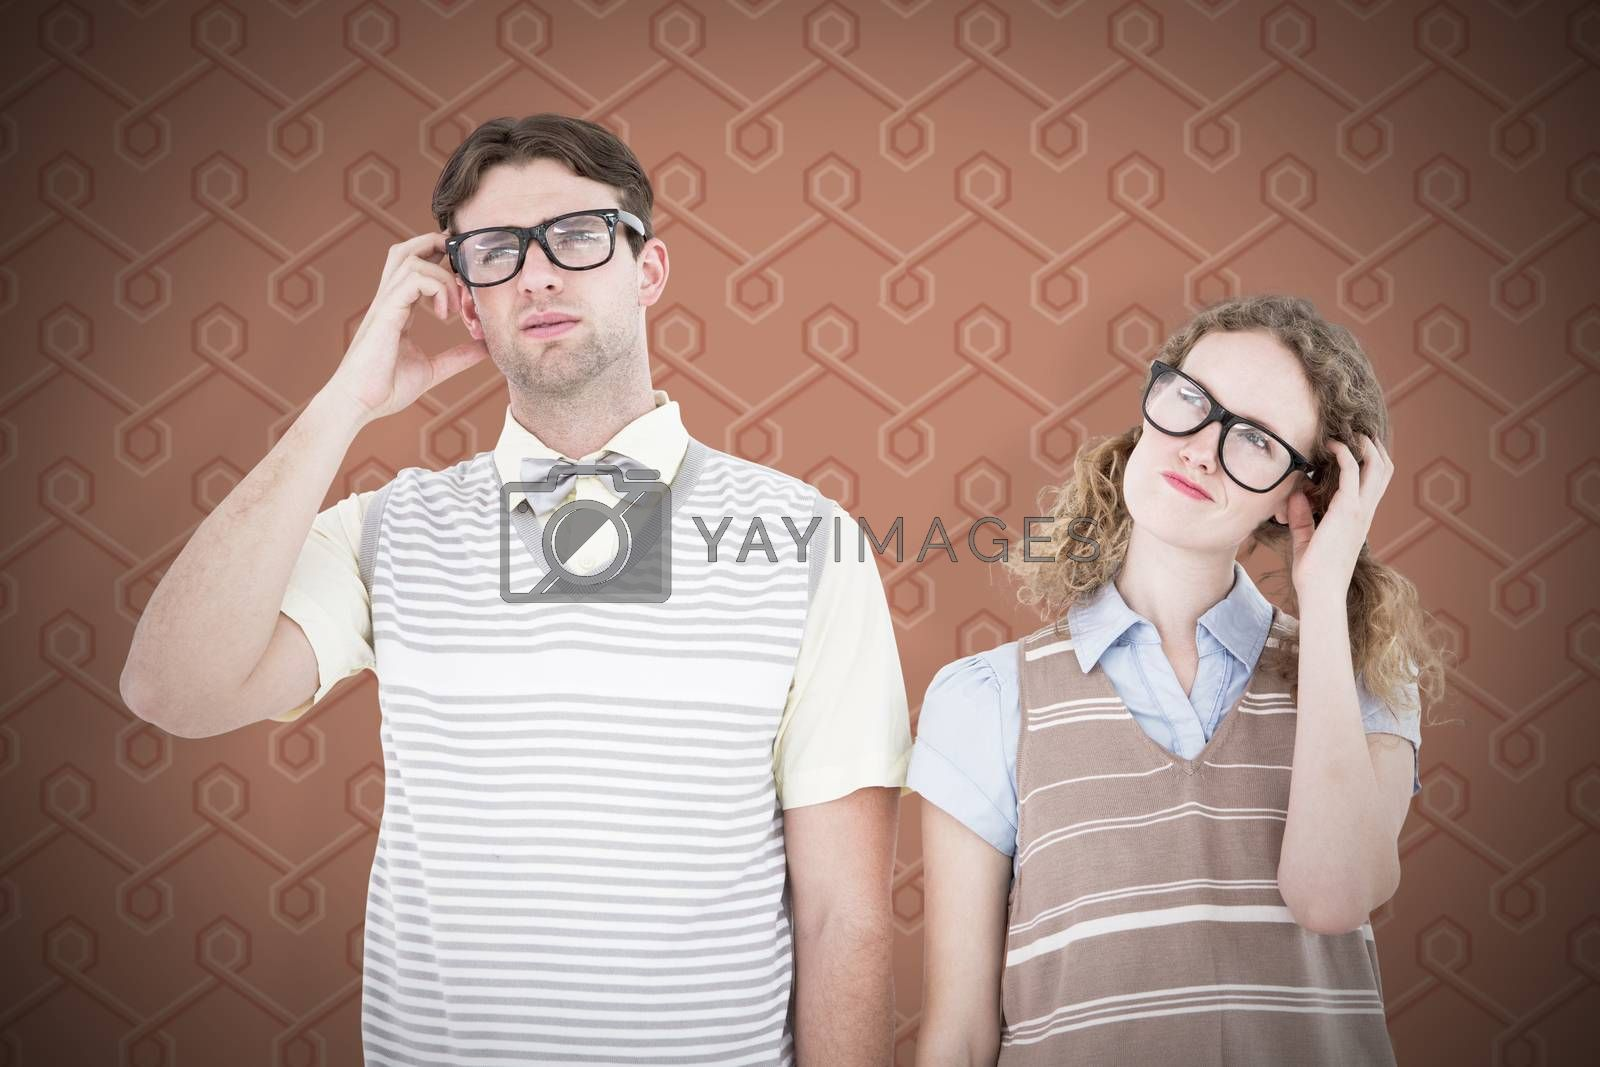 Geeky hipster couple thinking with hand on temple against background